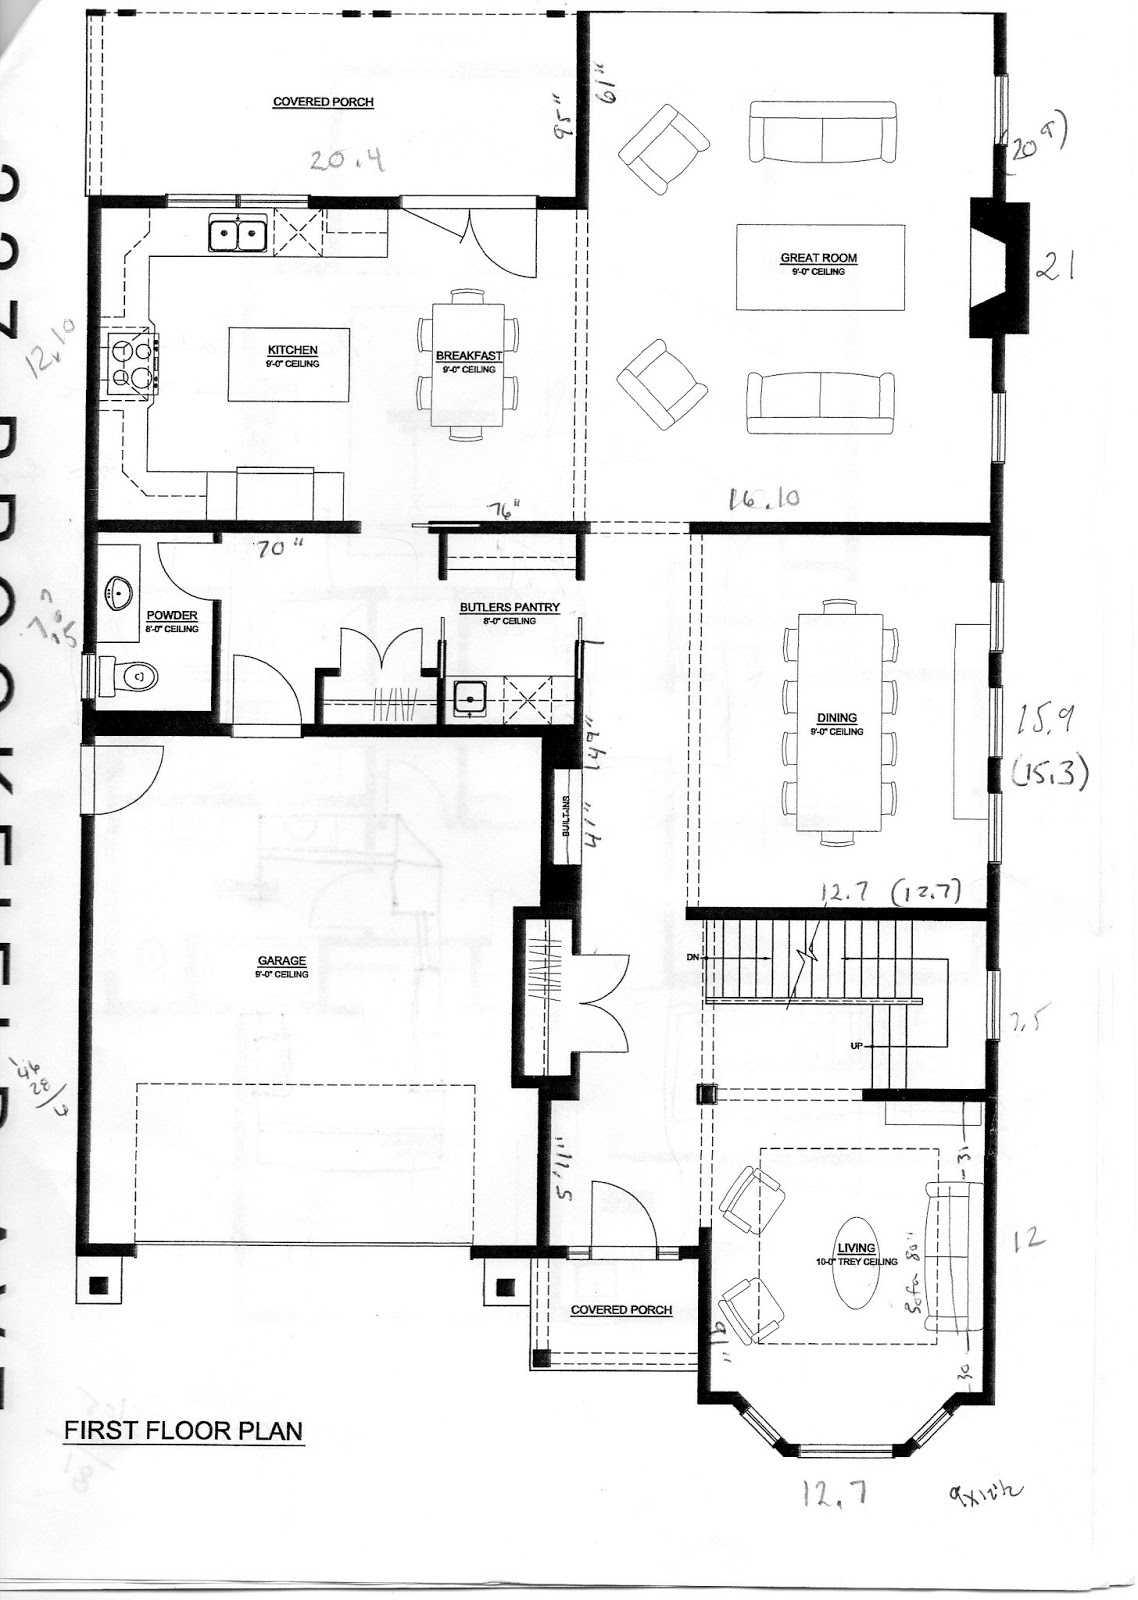 ipad+all+304 Pantry Floor Plans House on home floor plans, closet floor plans, den floor plans, nook floor plans, inglenook floor plans, family floor plans, living floor plans, produce floor plans, utility floor plans, granite floor plans, man cave floor plans, storage floor plans, business center floor plans, yard floor plans, patio floor plans, pantry cabinets, basement floor plans, shower floor plans, room floor plans, kitchen floor plans,